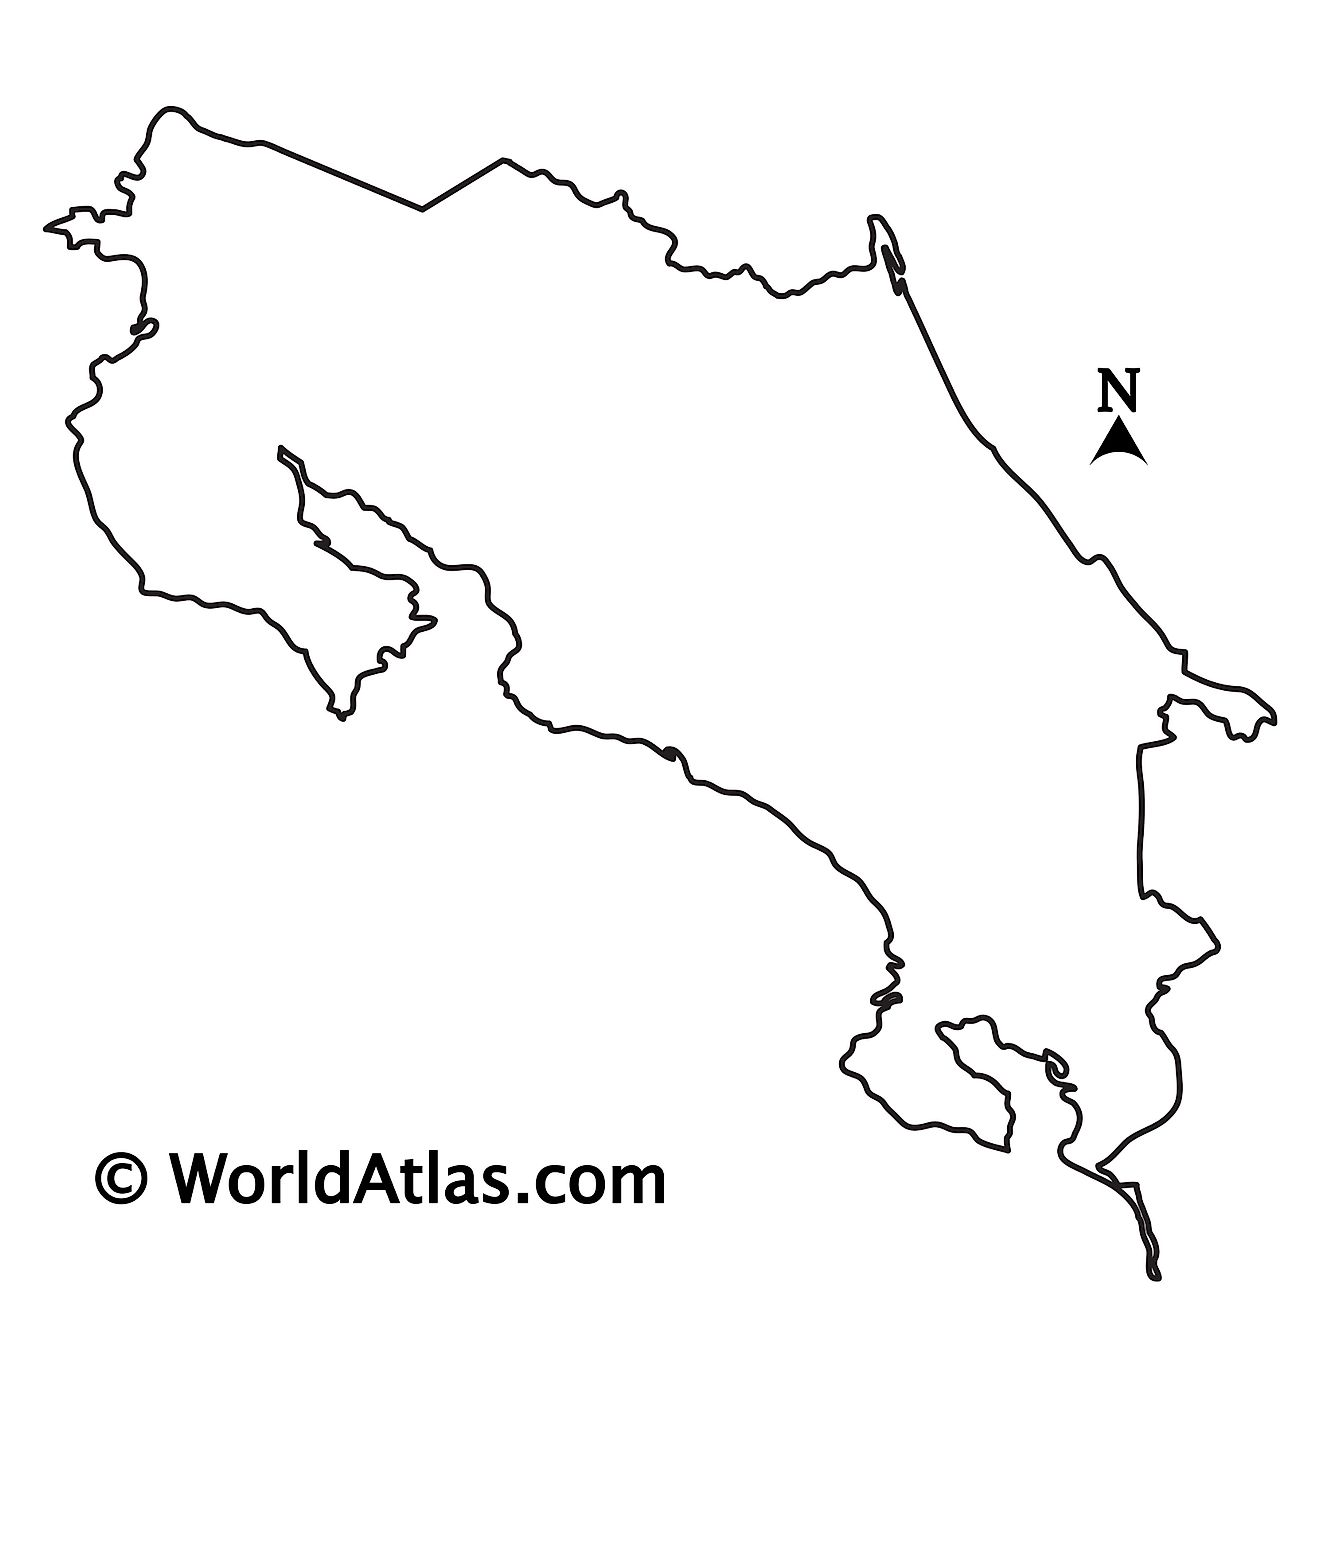 Blank Outline Map of Costa Rica